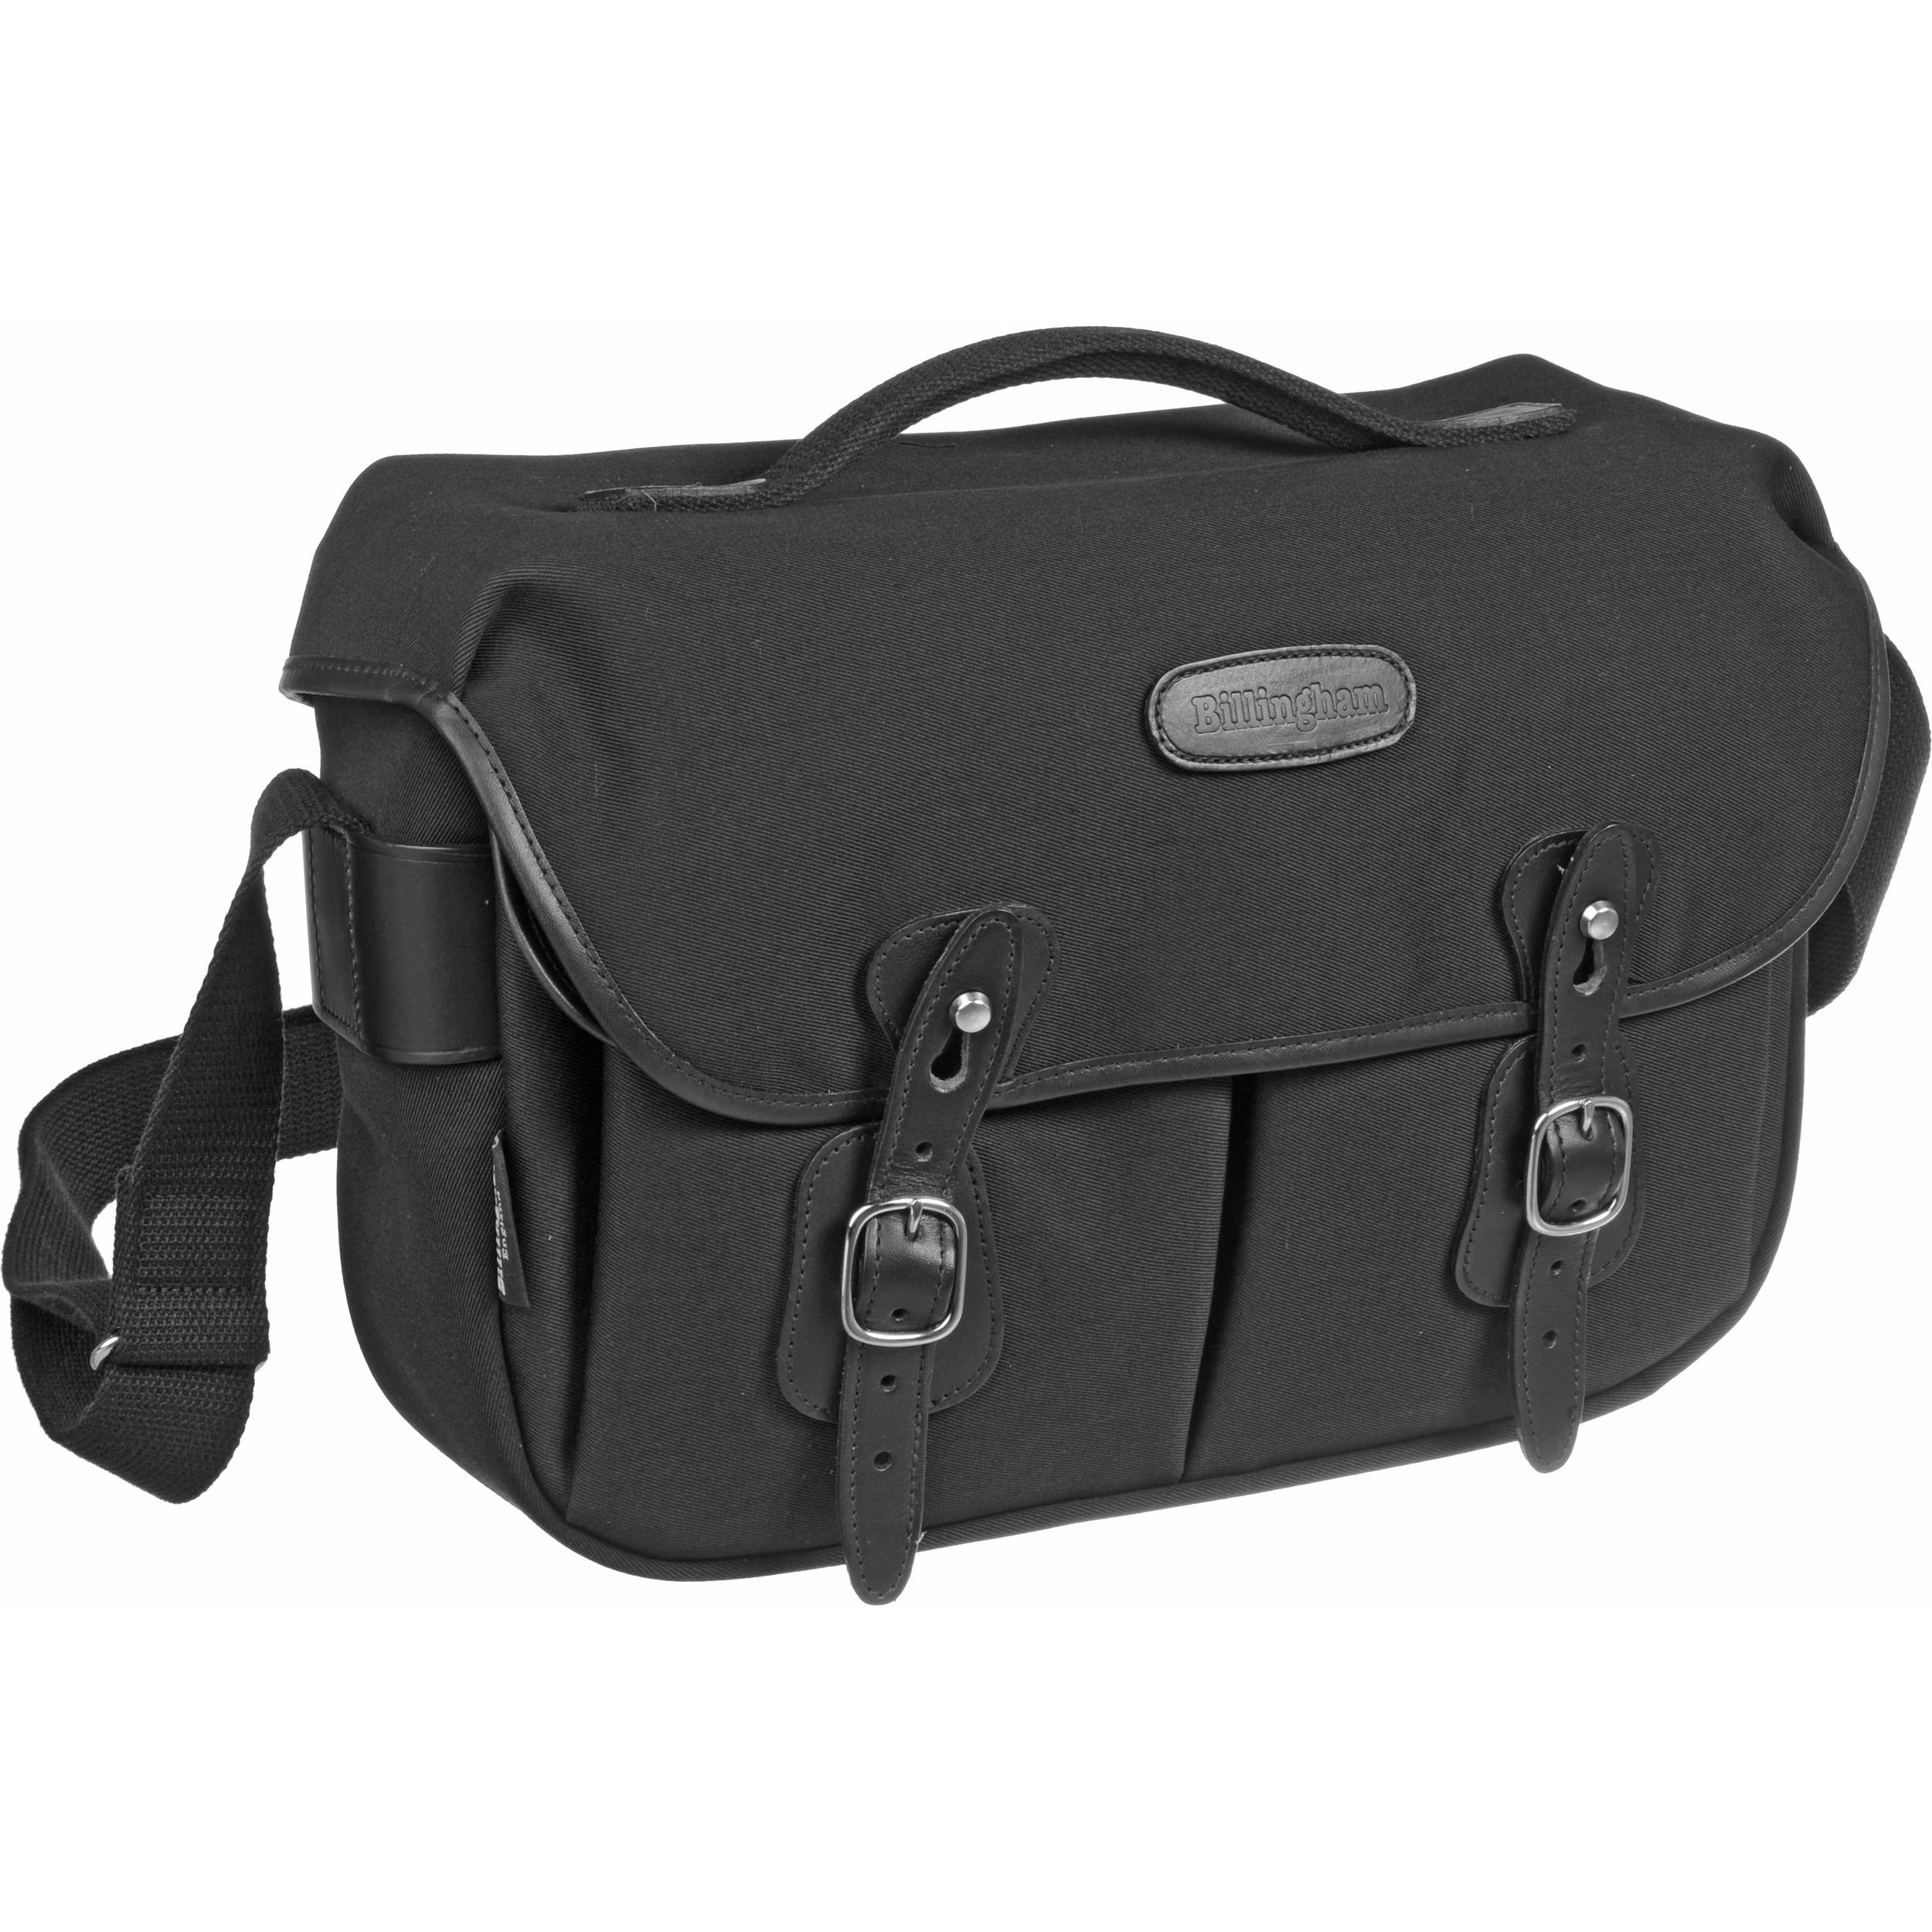 Billingham Hadley Pro Nbsp Shoulder Bag Black Canvas